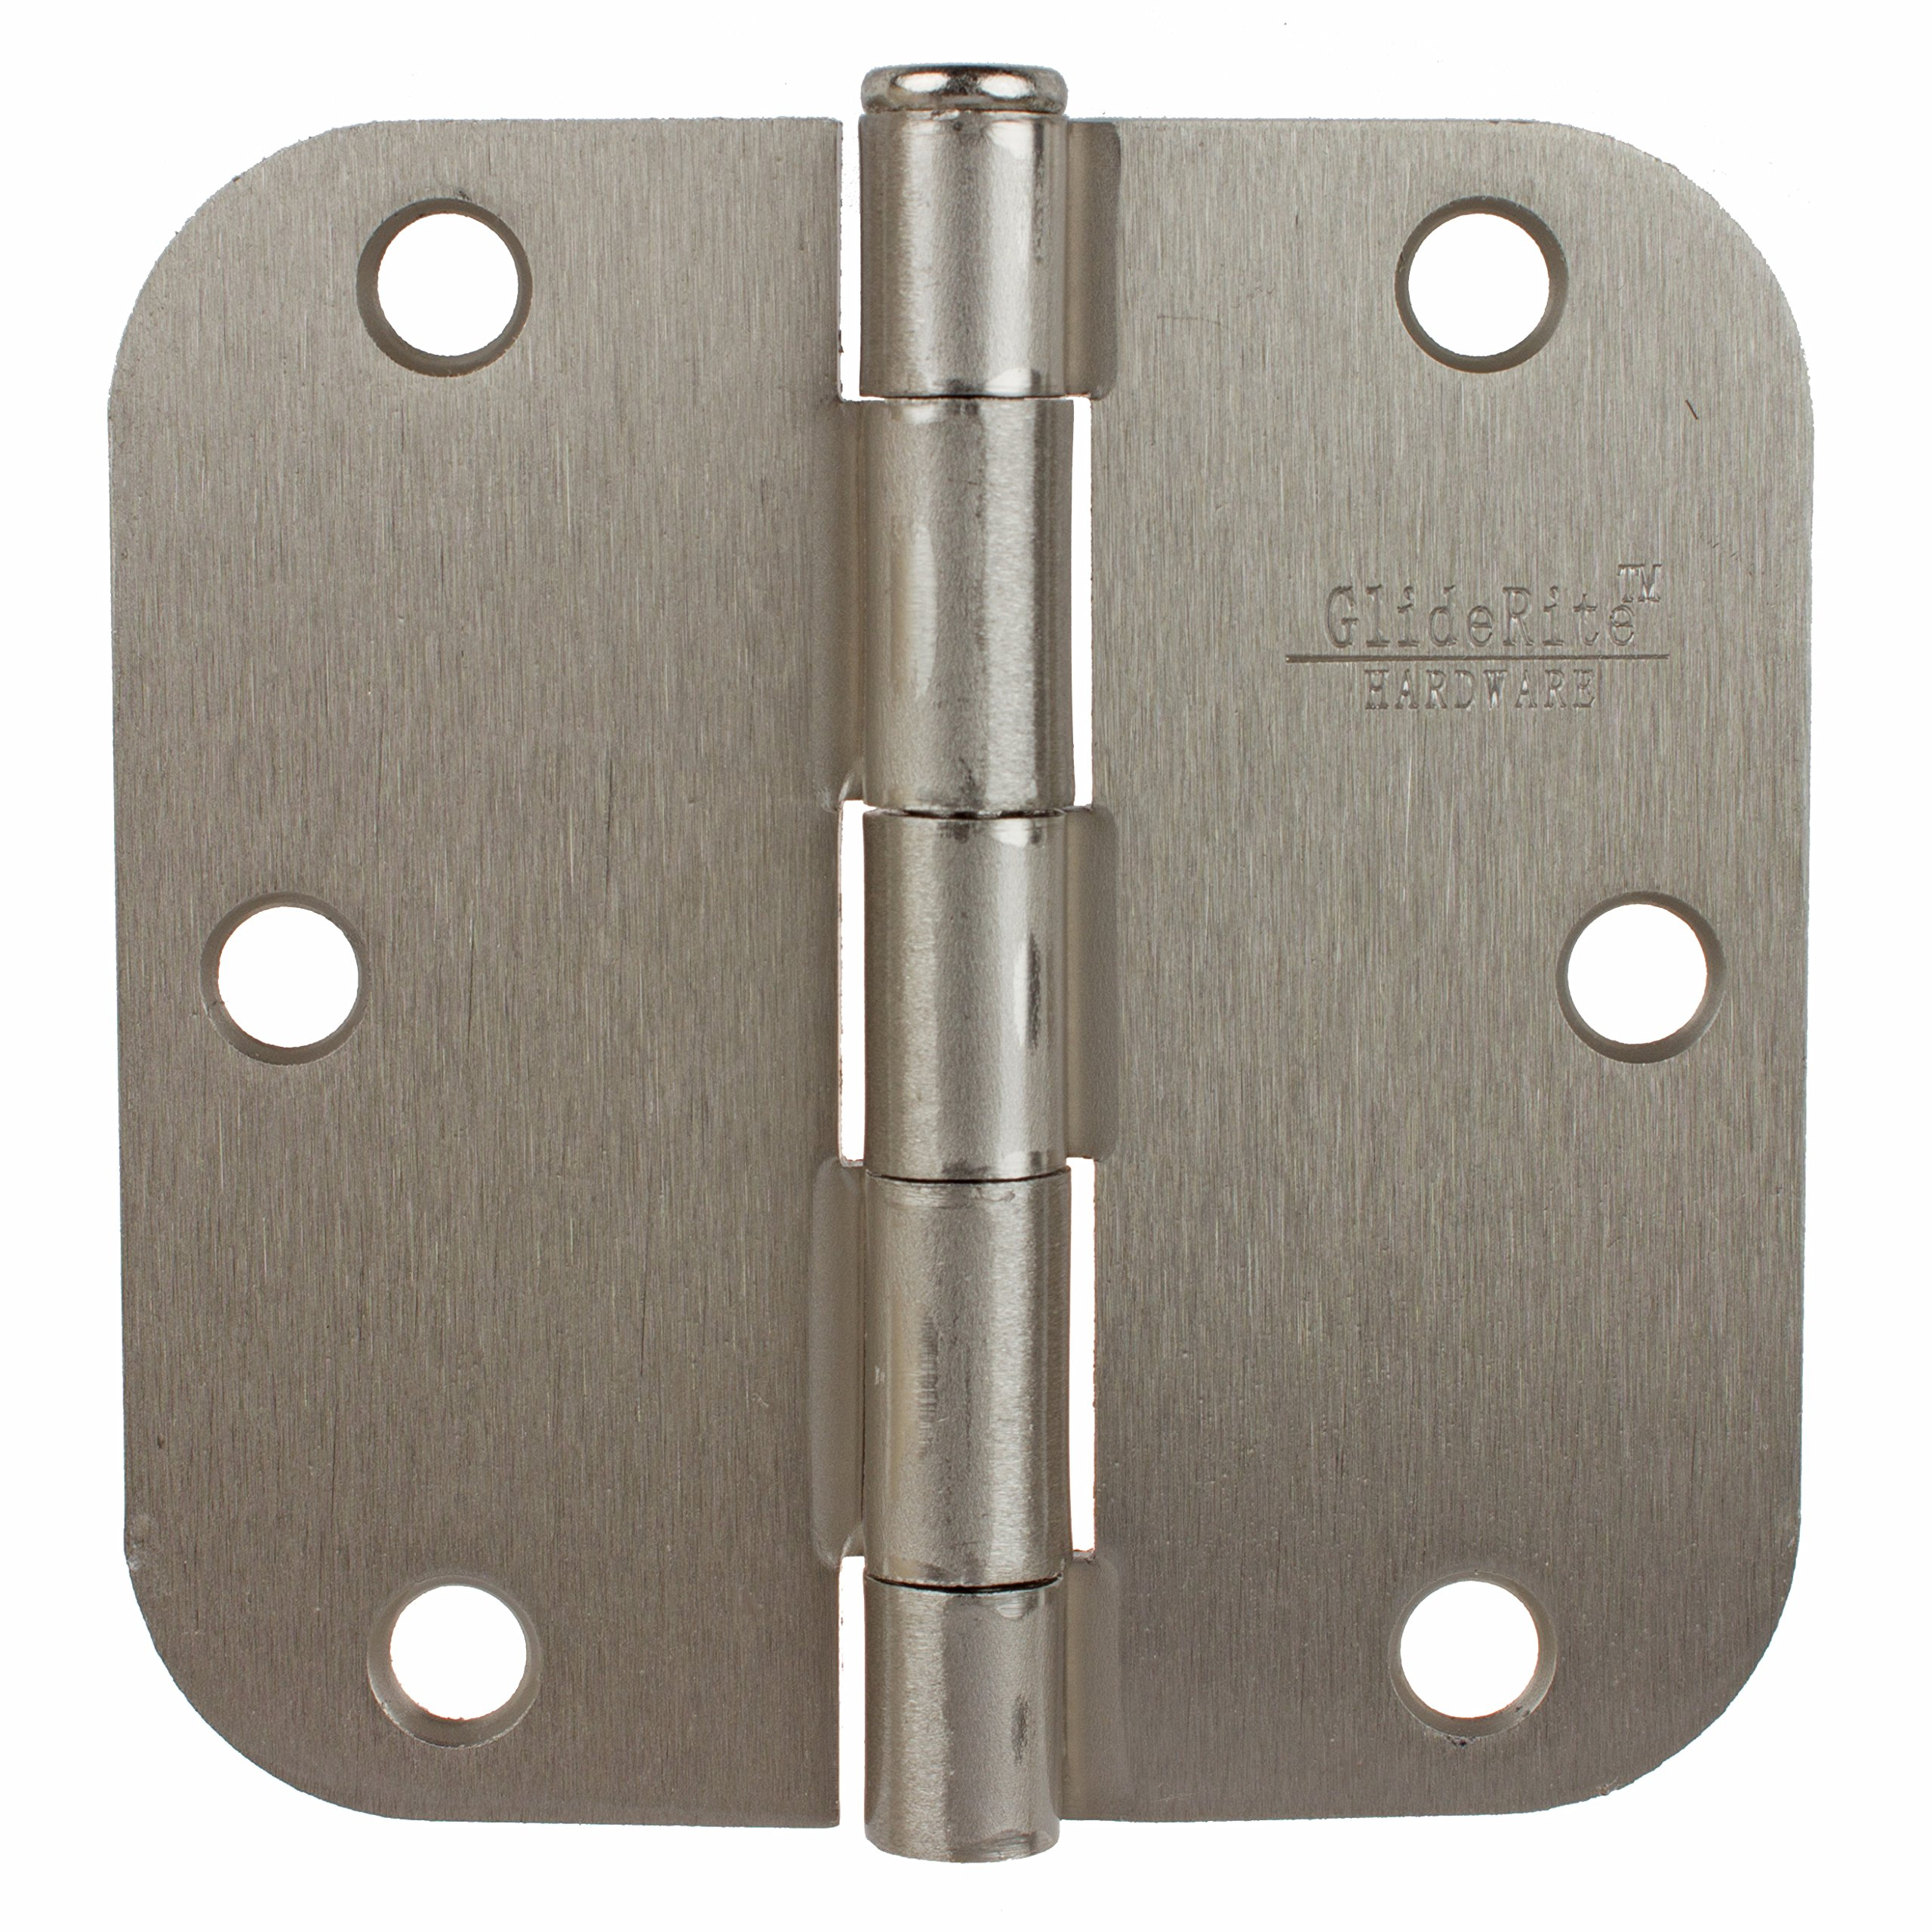 GlideRite Hardware 3558-SN-100 3.5 inch steel Door Hinges 0.625 inch Radius Satin Nickel Finish 100 Pack